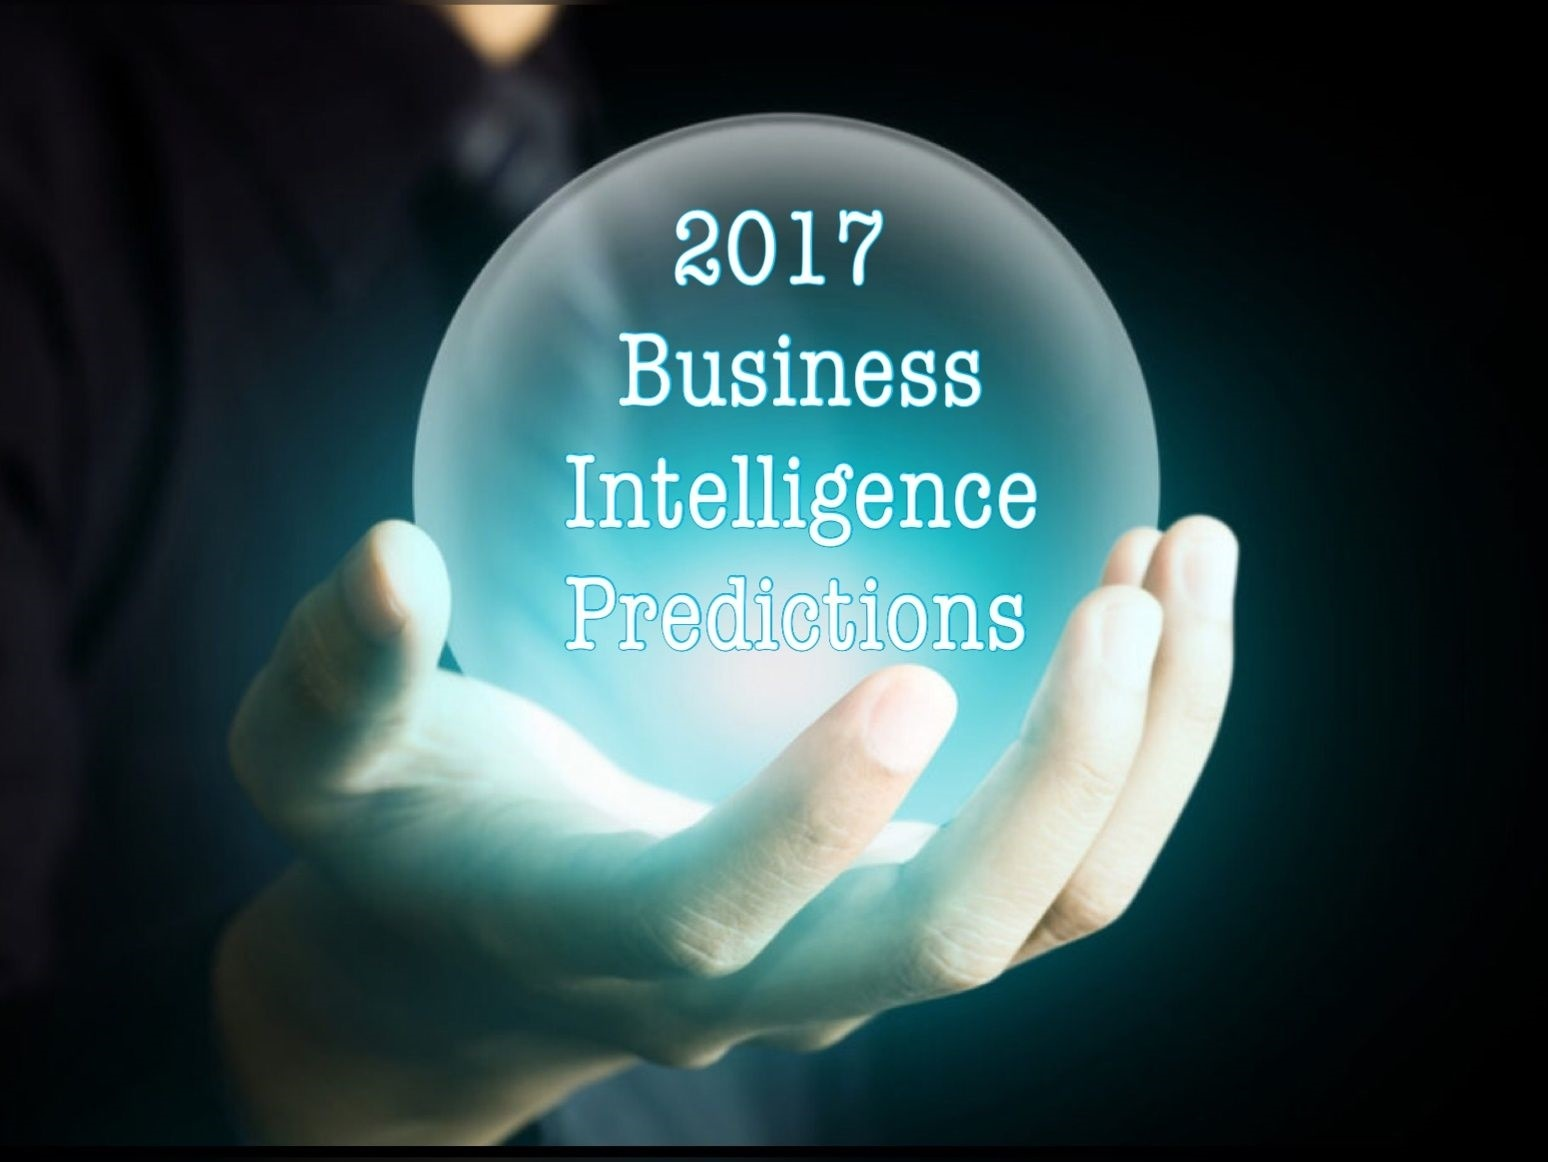 4 Pretty Amazing Predictions Of Business Intelligence For 2017